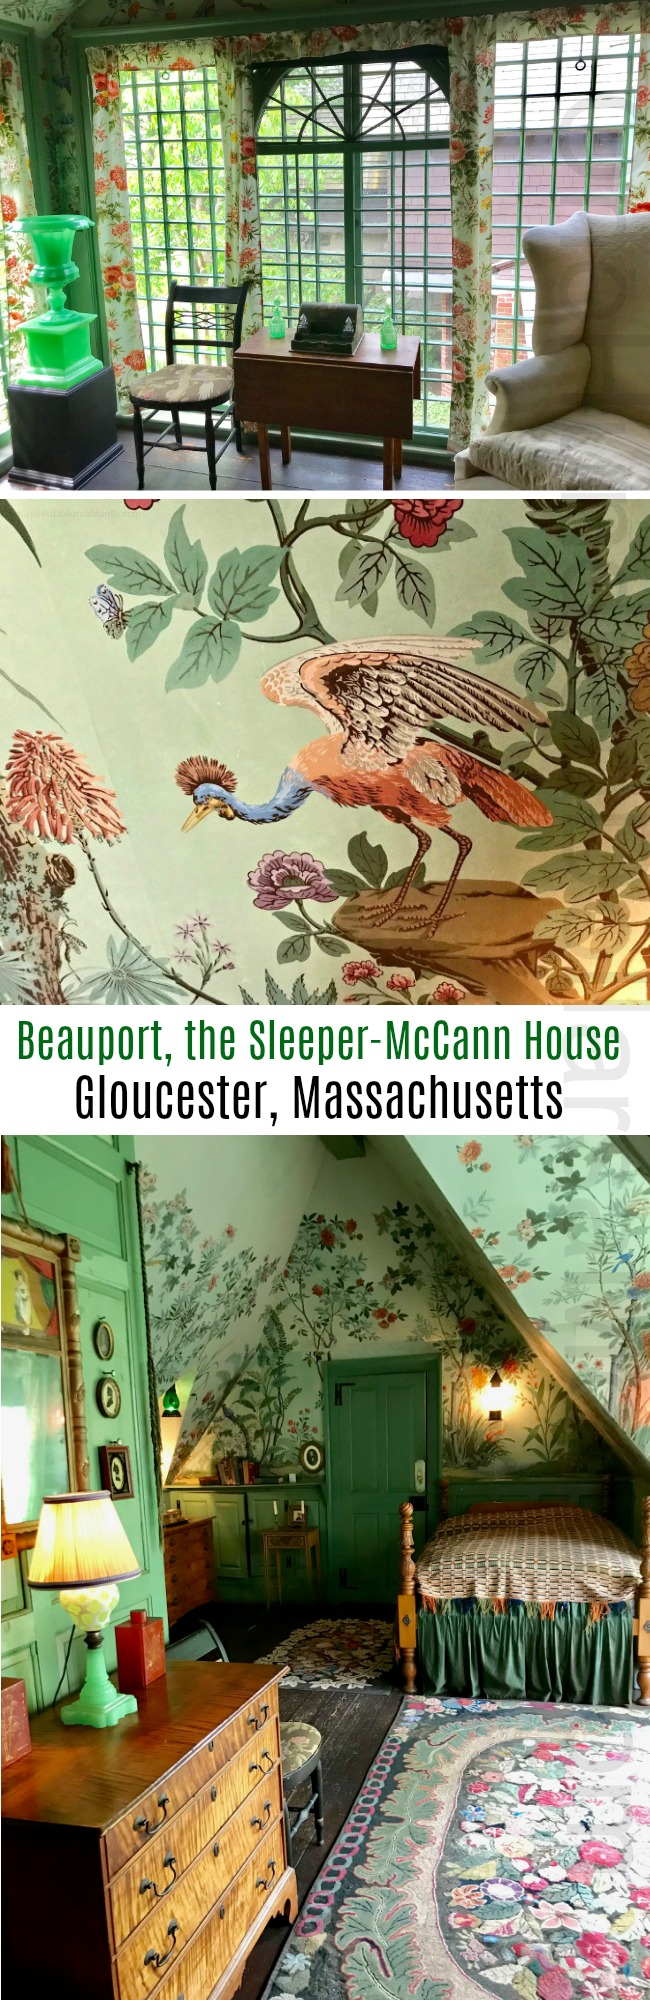 Beauport, the Sleeper-McCann House ~ Gloucester, Massachusetts